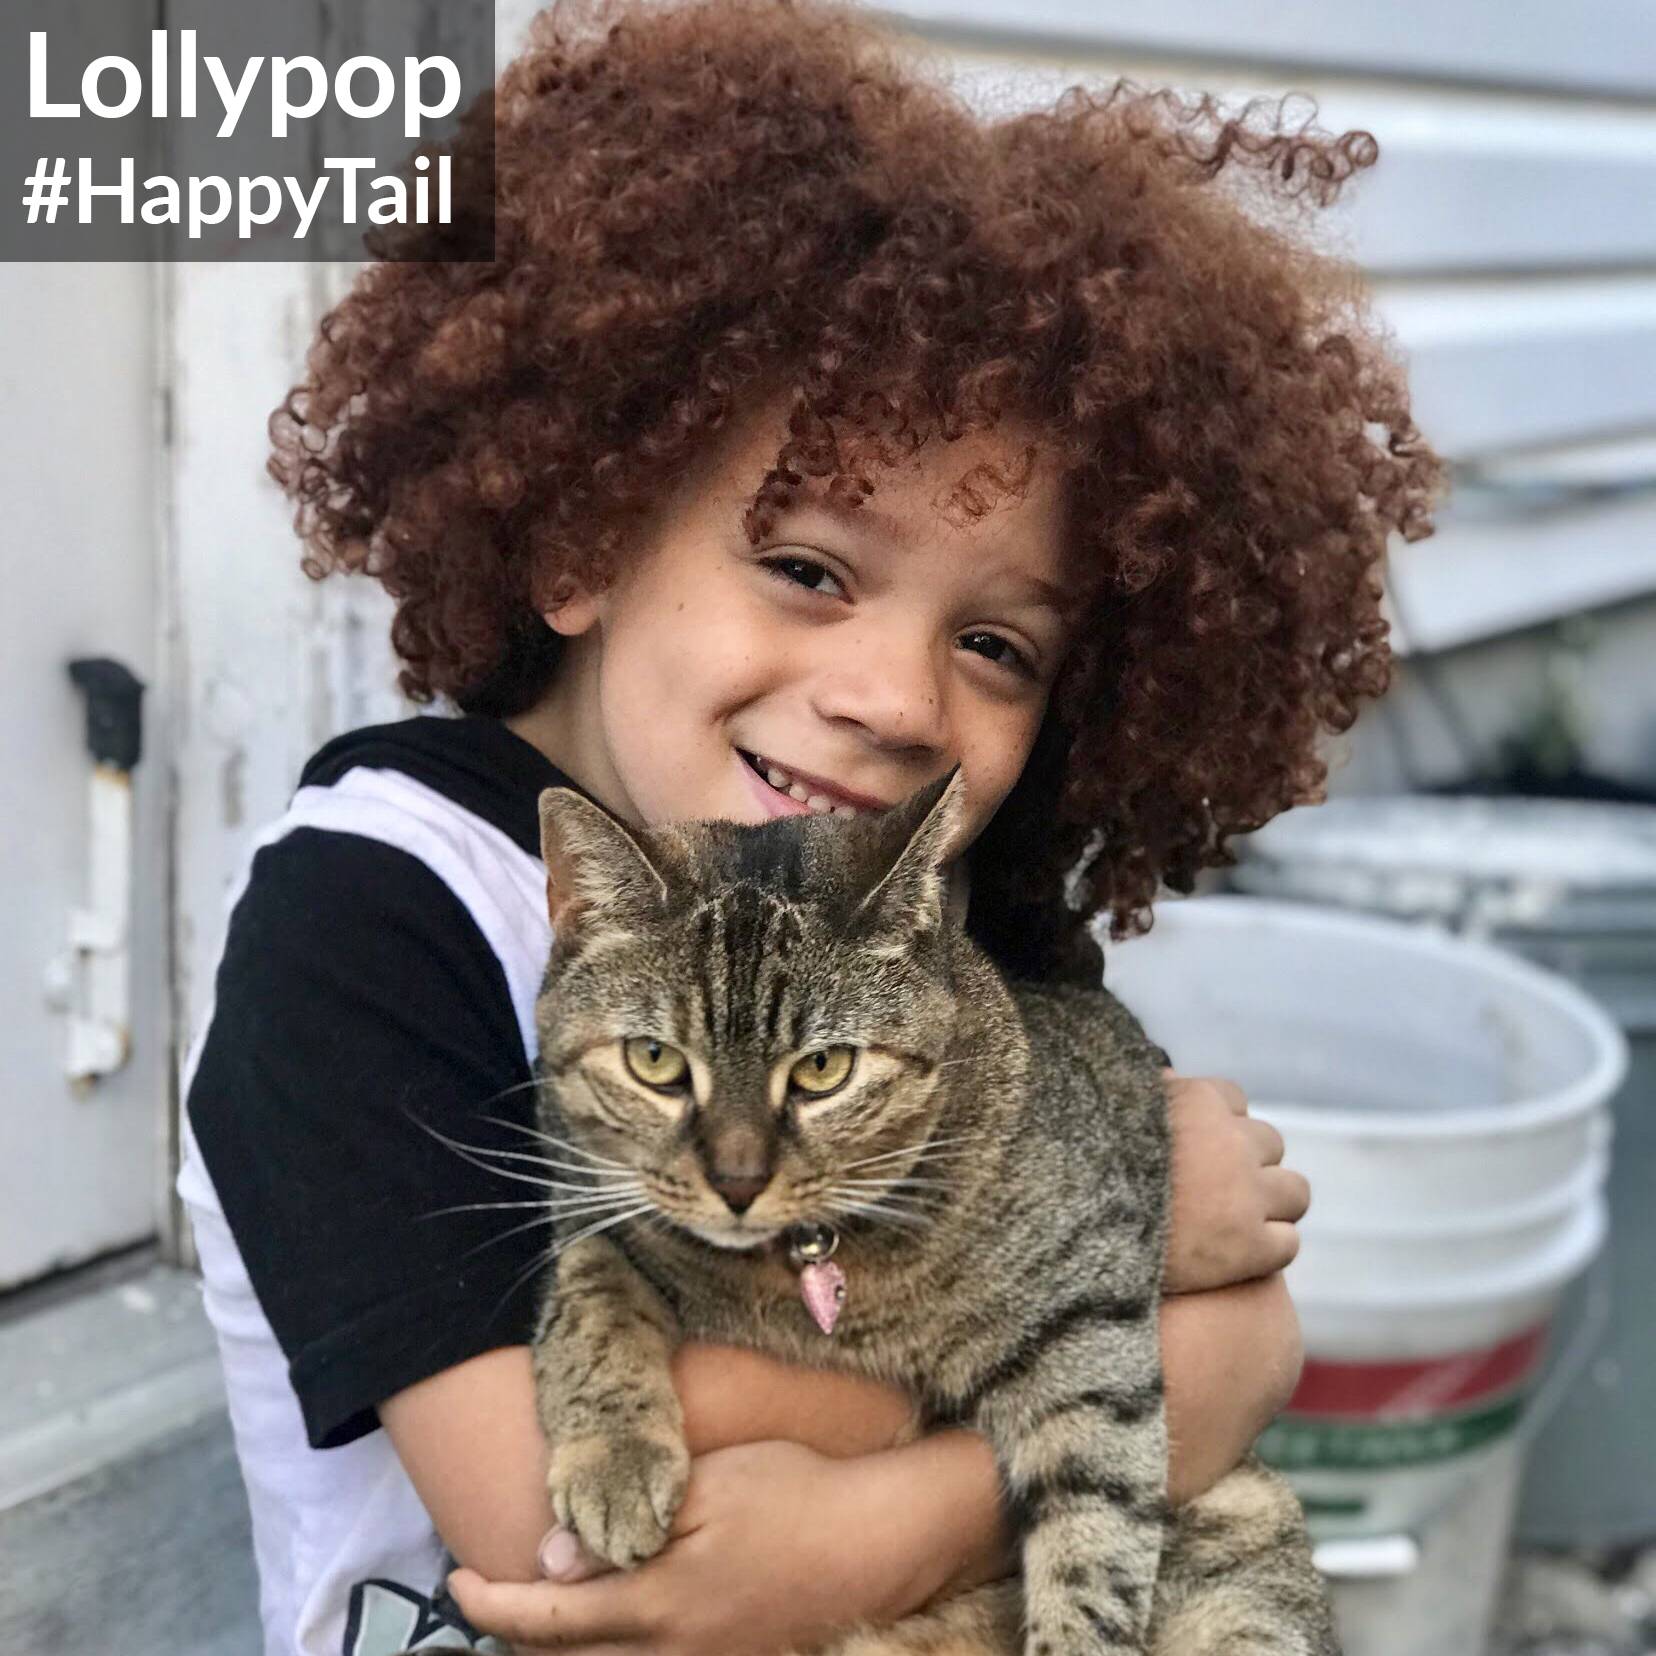 Lollypop Happytail